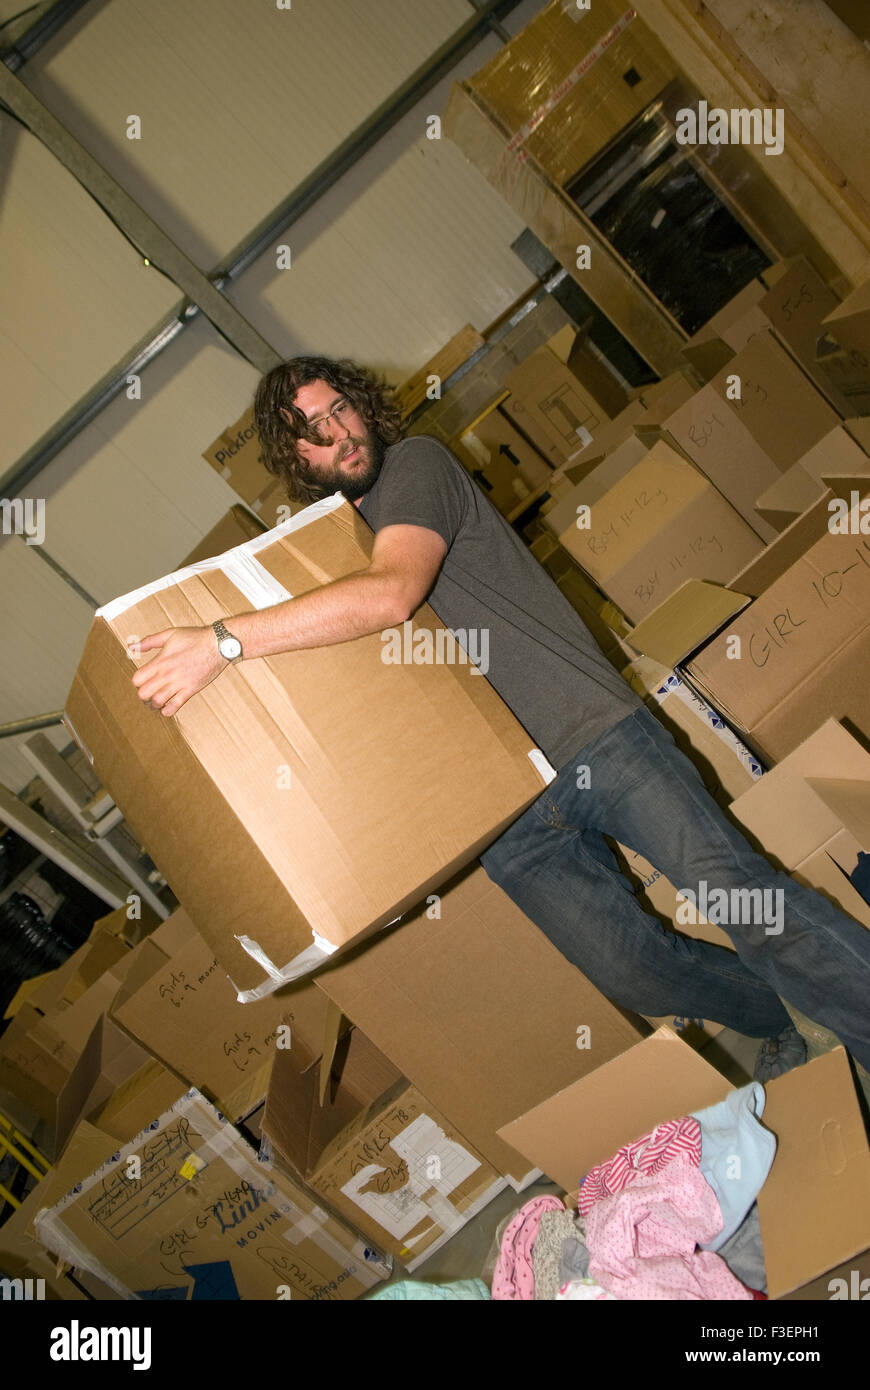 Volunteer in a removal company's warehouse moving packed up donated items of clothing and other non-perishable - Stock Image